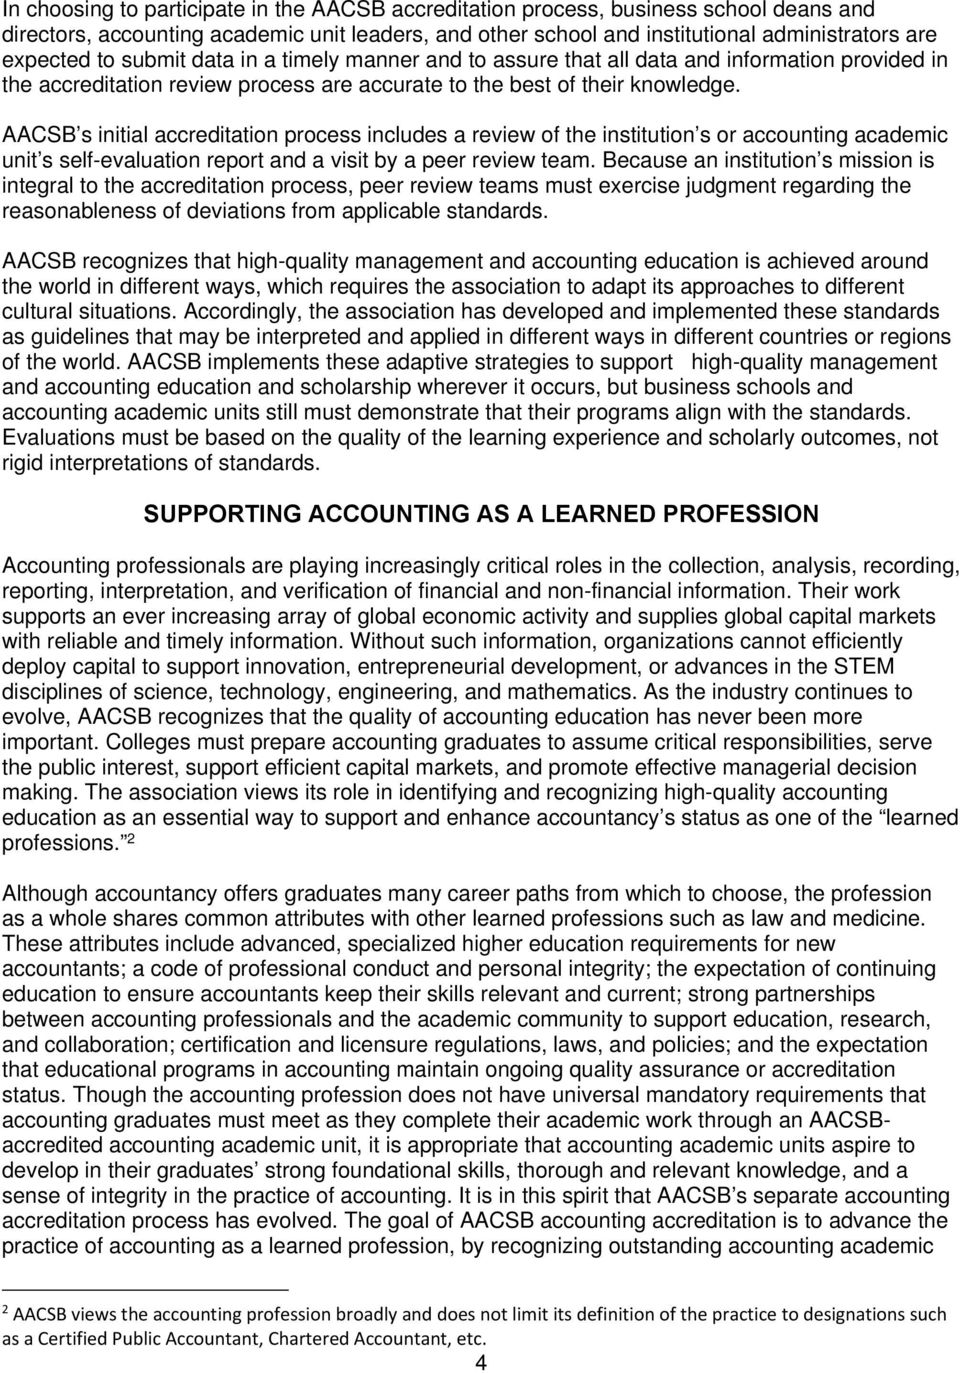 AACSB s initial accreditation process includes a review of the institution s or accounting academic unit s self-evaluation report and a visit by a peer review team.